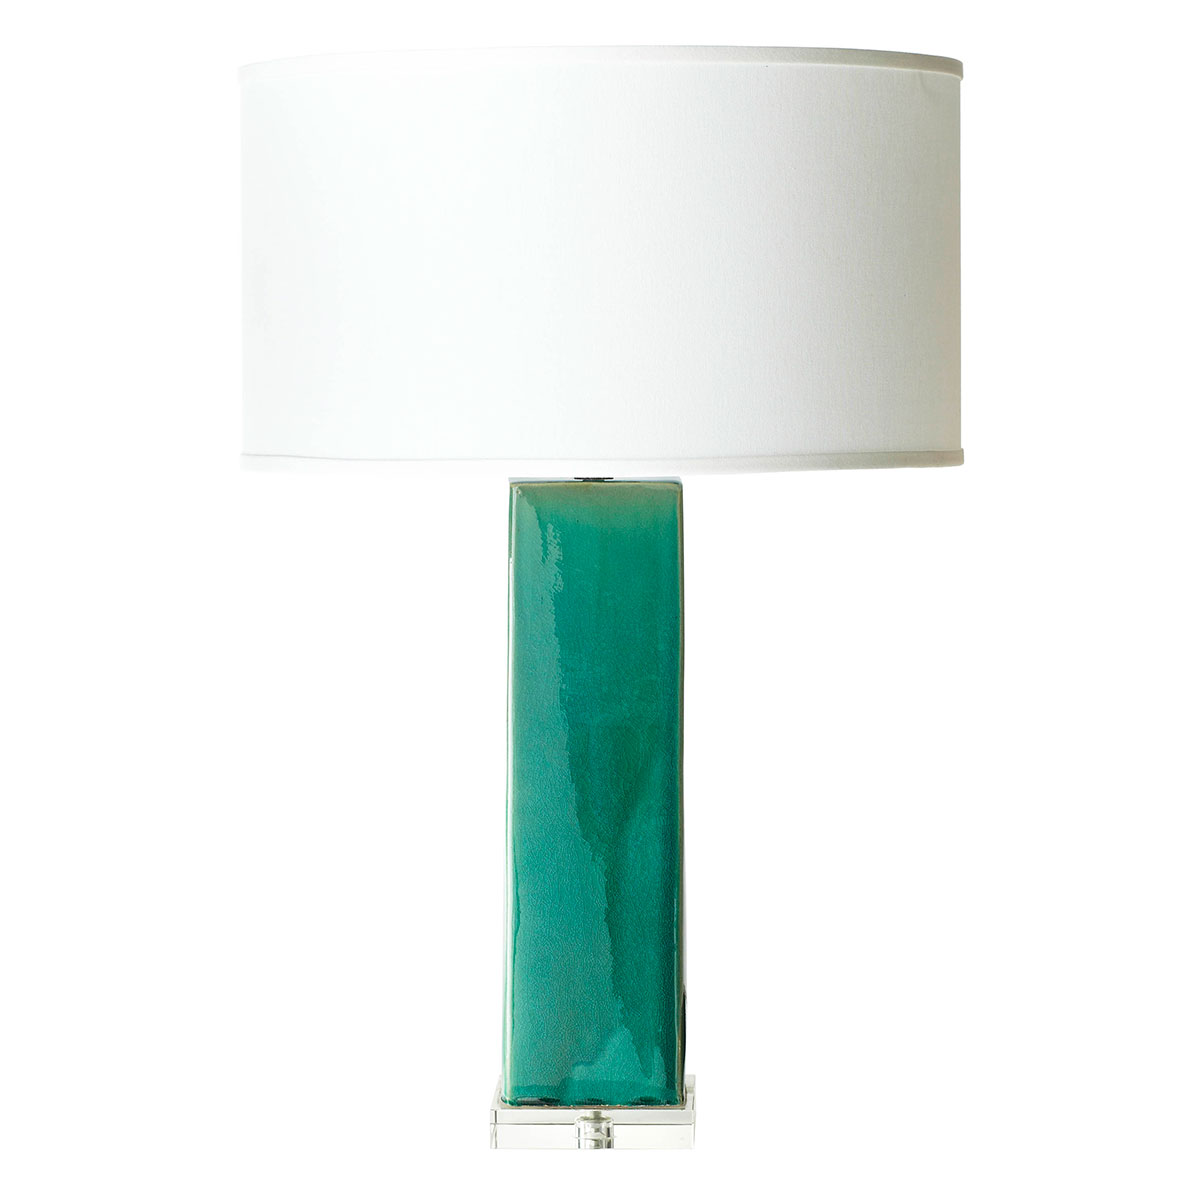 Teal Lamp Sumptuous Living Home Decor